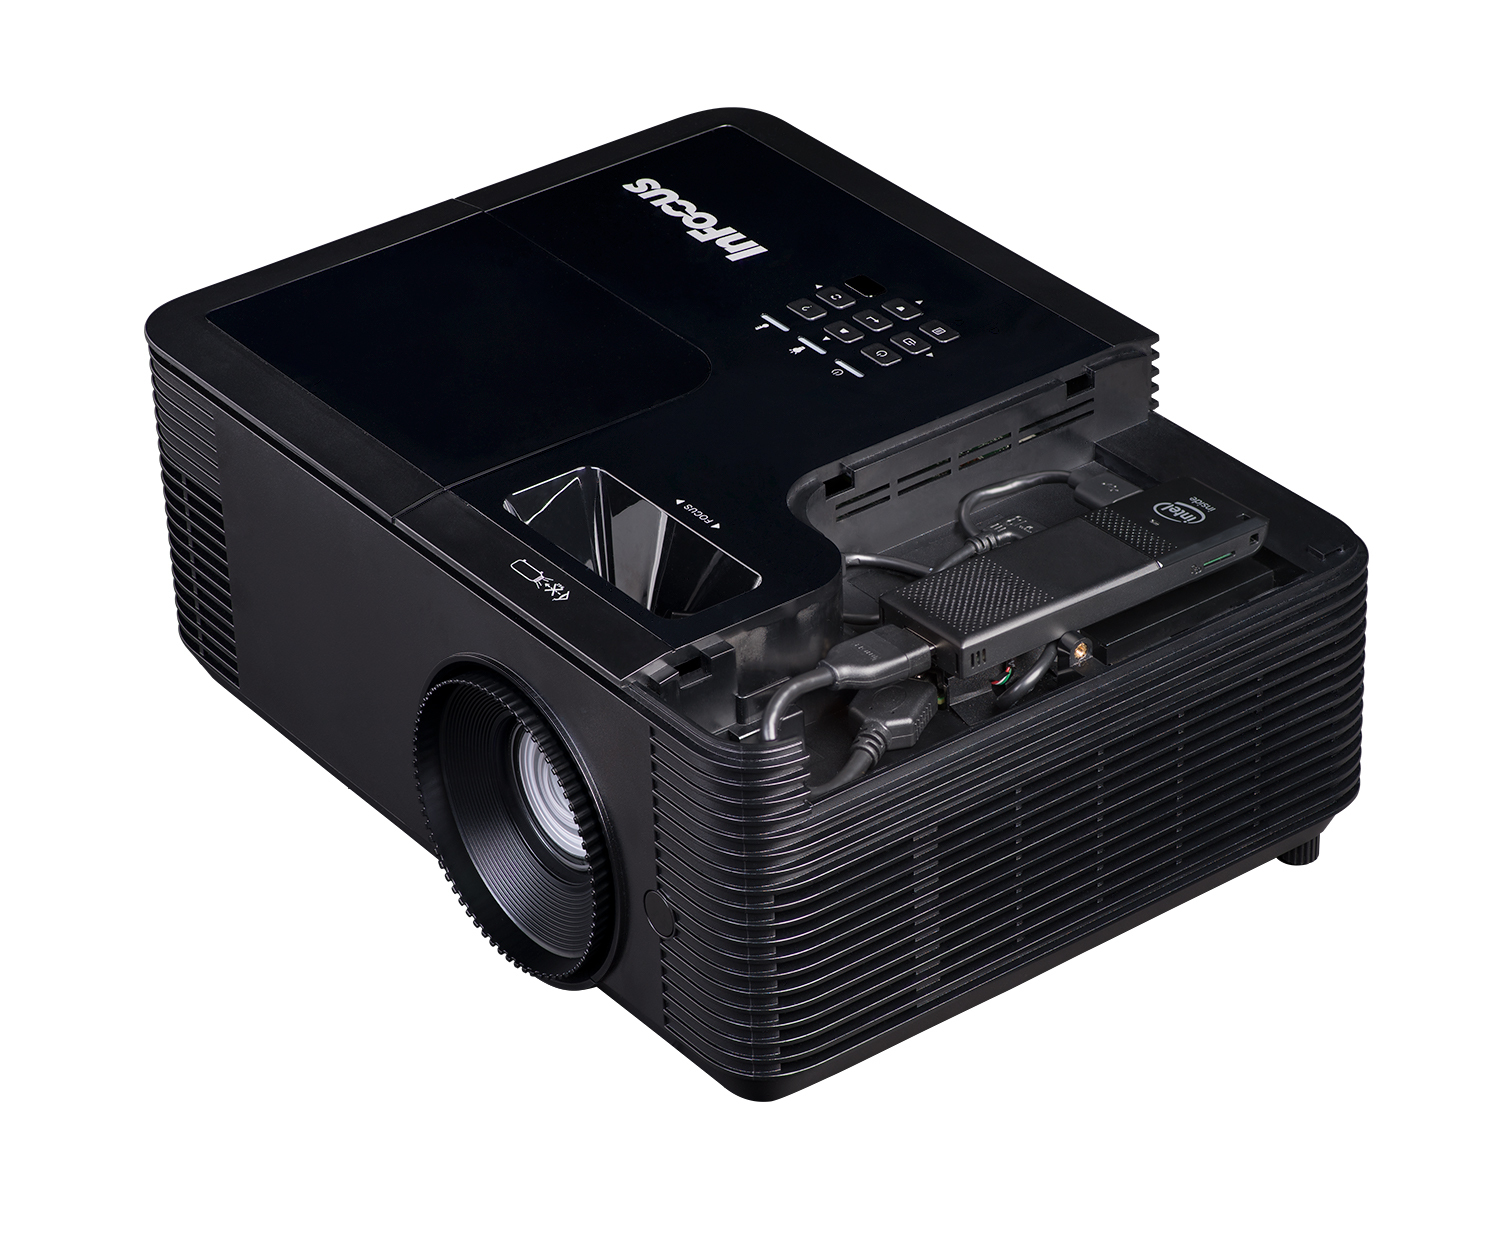 Infocus IN138HD 1080P data projector 4000 ANSI lumens DLP 1080p (1920x1080) 3D Desktop projector Black